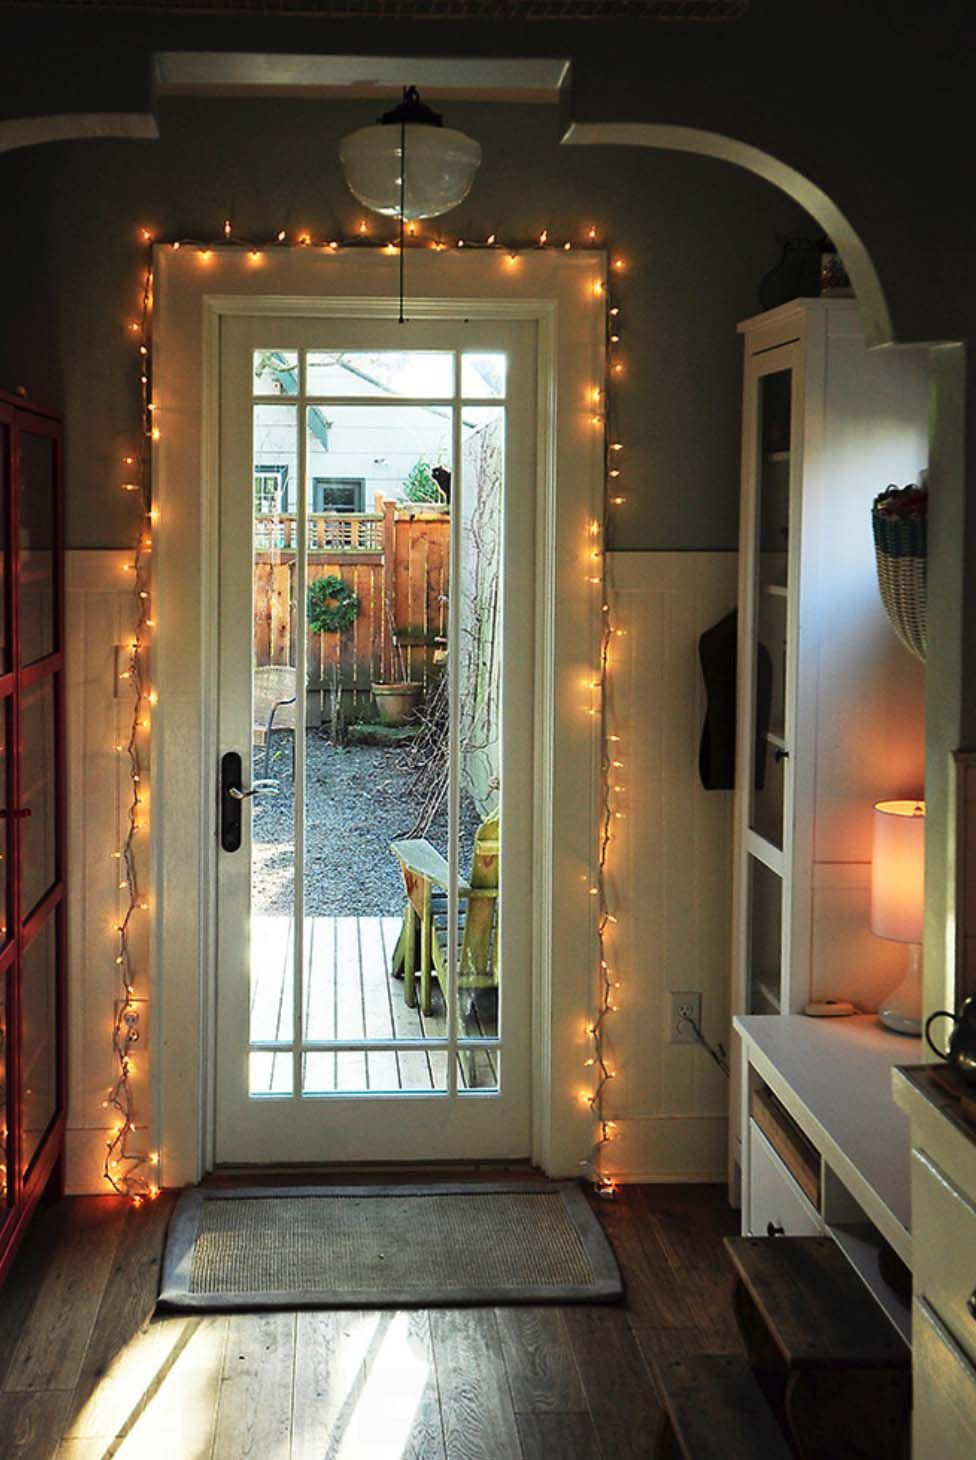 45 Inspiring ways to decorate your home with string lights ...